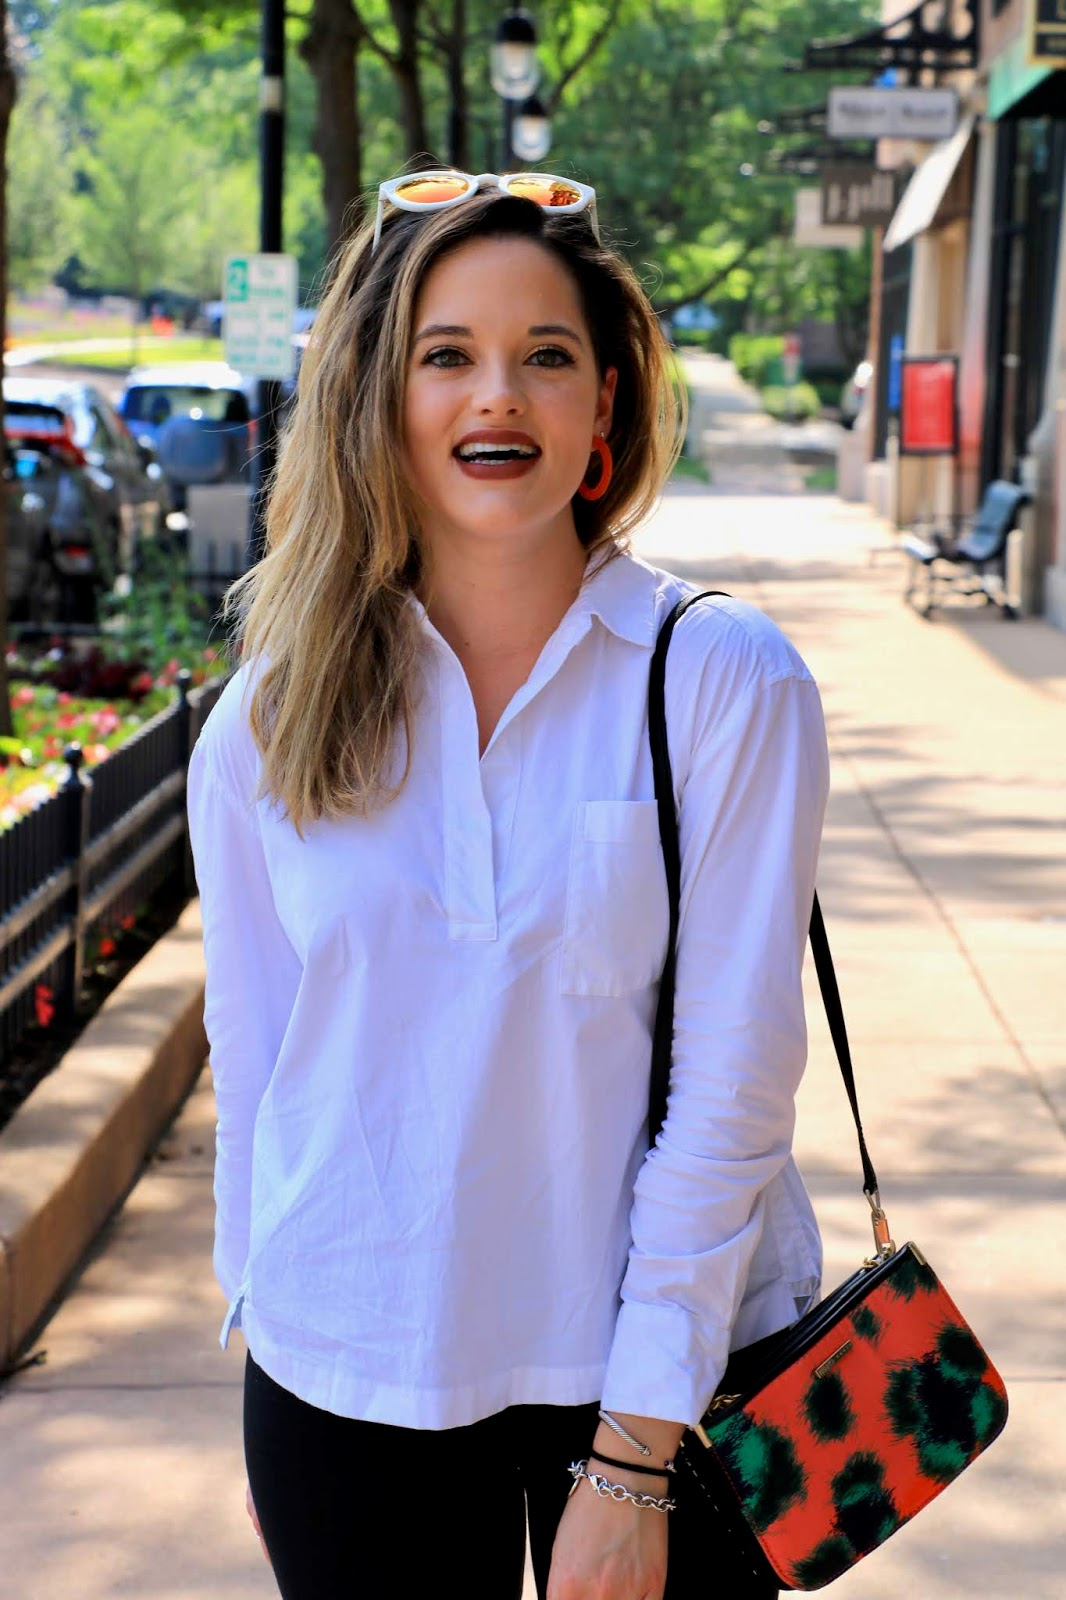 Nyc fashion blogger Kathleen Harper wearing a summer outfit of bike shorts and a white blouse.